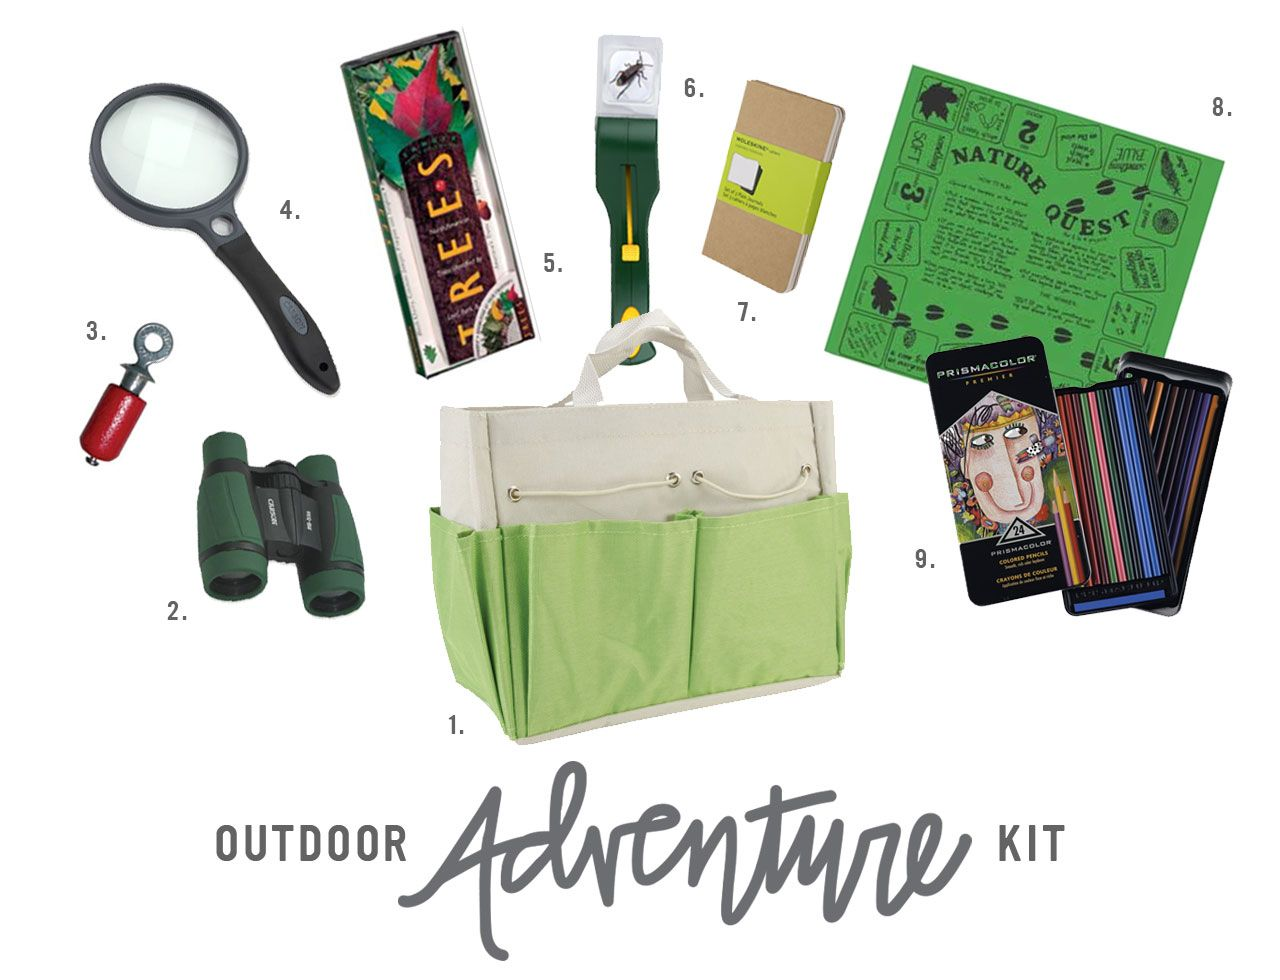 Is it getting warmer in your neck of the woods? It is here and we are so eager to embark on the great outdoors! I thought it would be fun to share this outdoor adventure kit that we've enjoyed throughout the years. It's helpful to keep it all packed and ready-to-go, so we can grab …